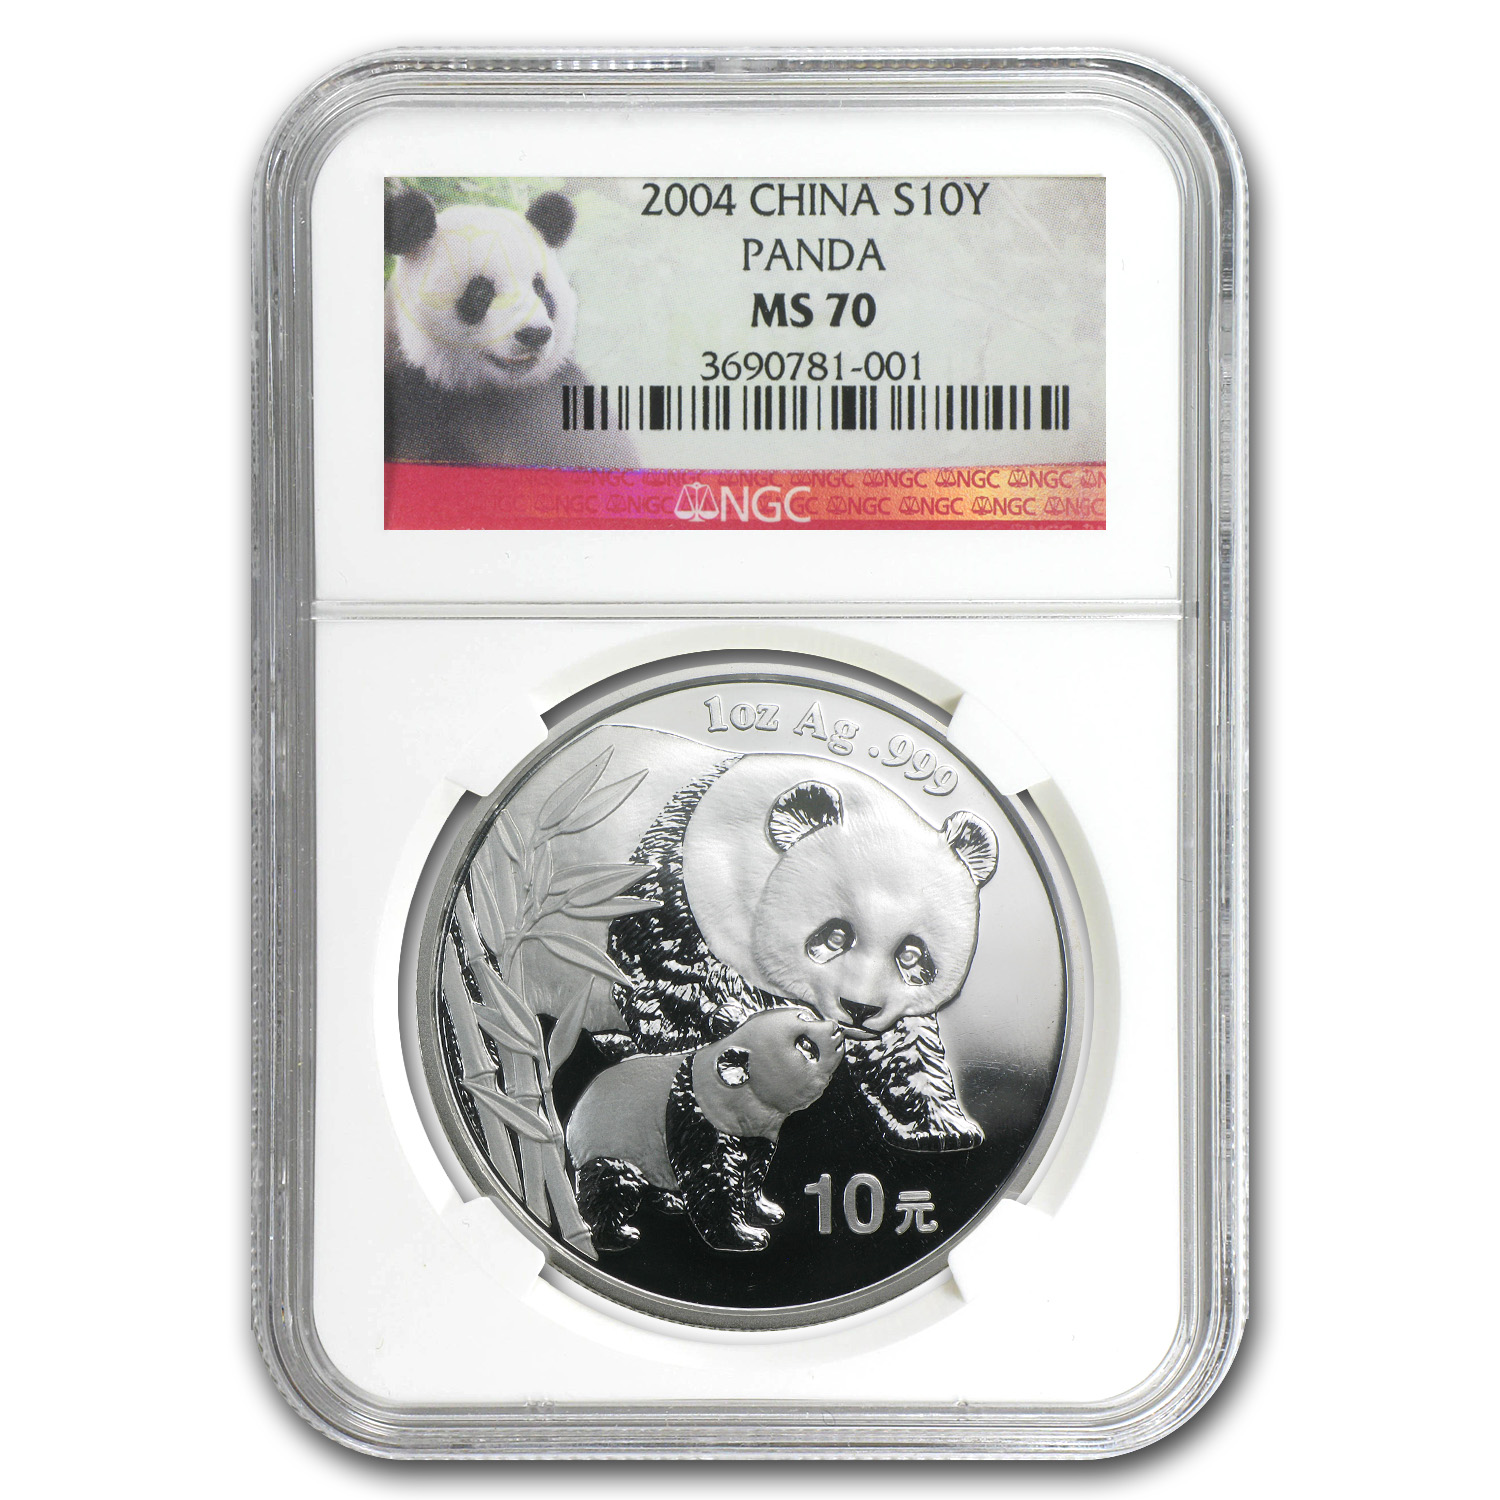 2004 1 oz Silver Chinese Panda - MS-70 NGC